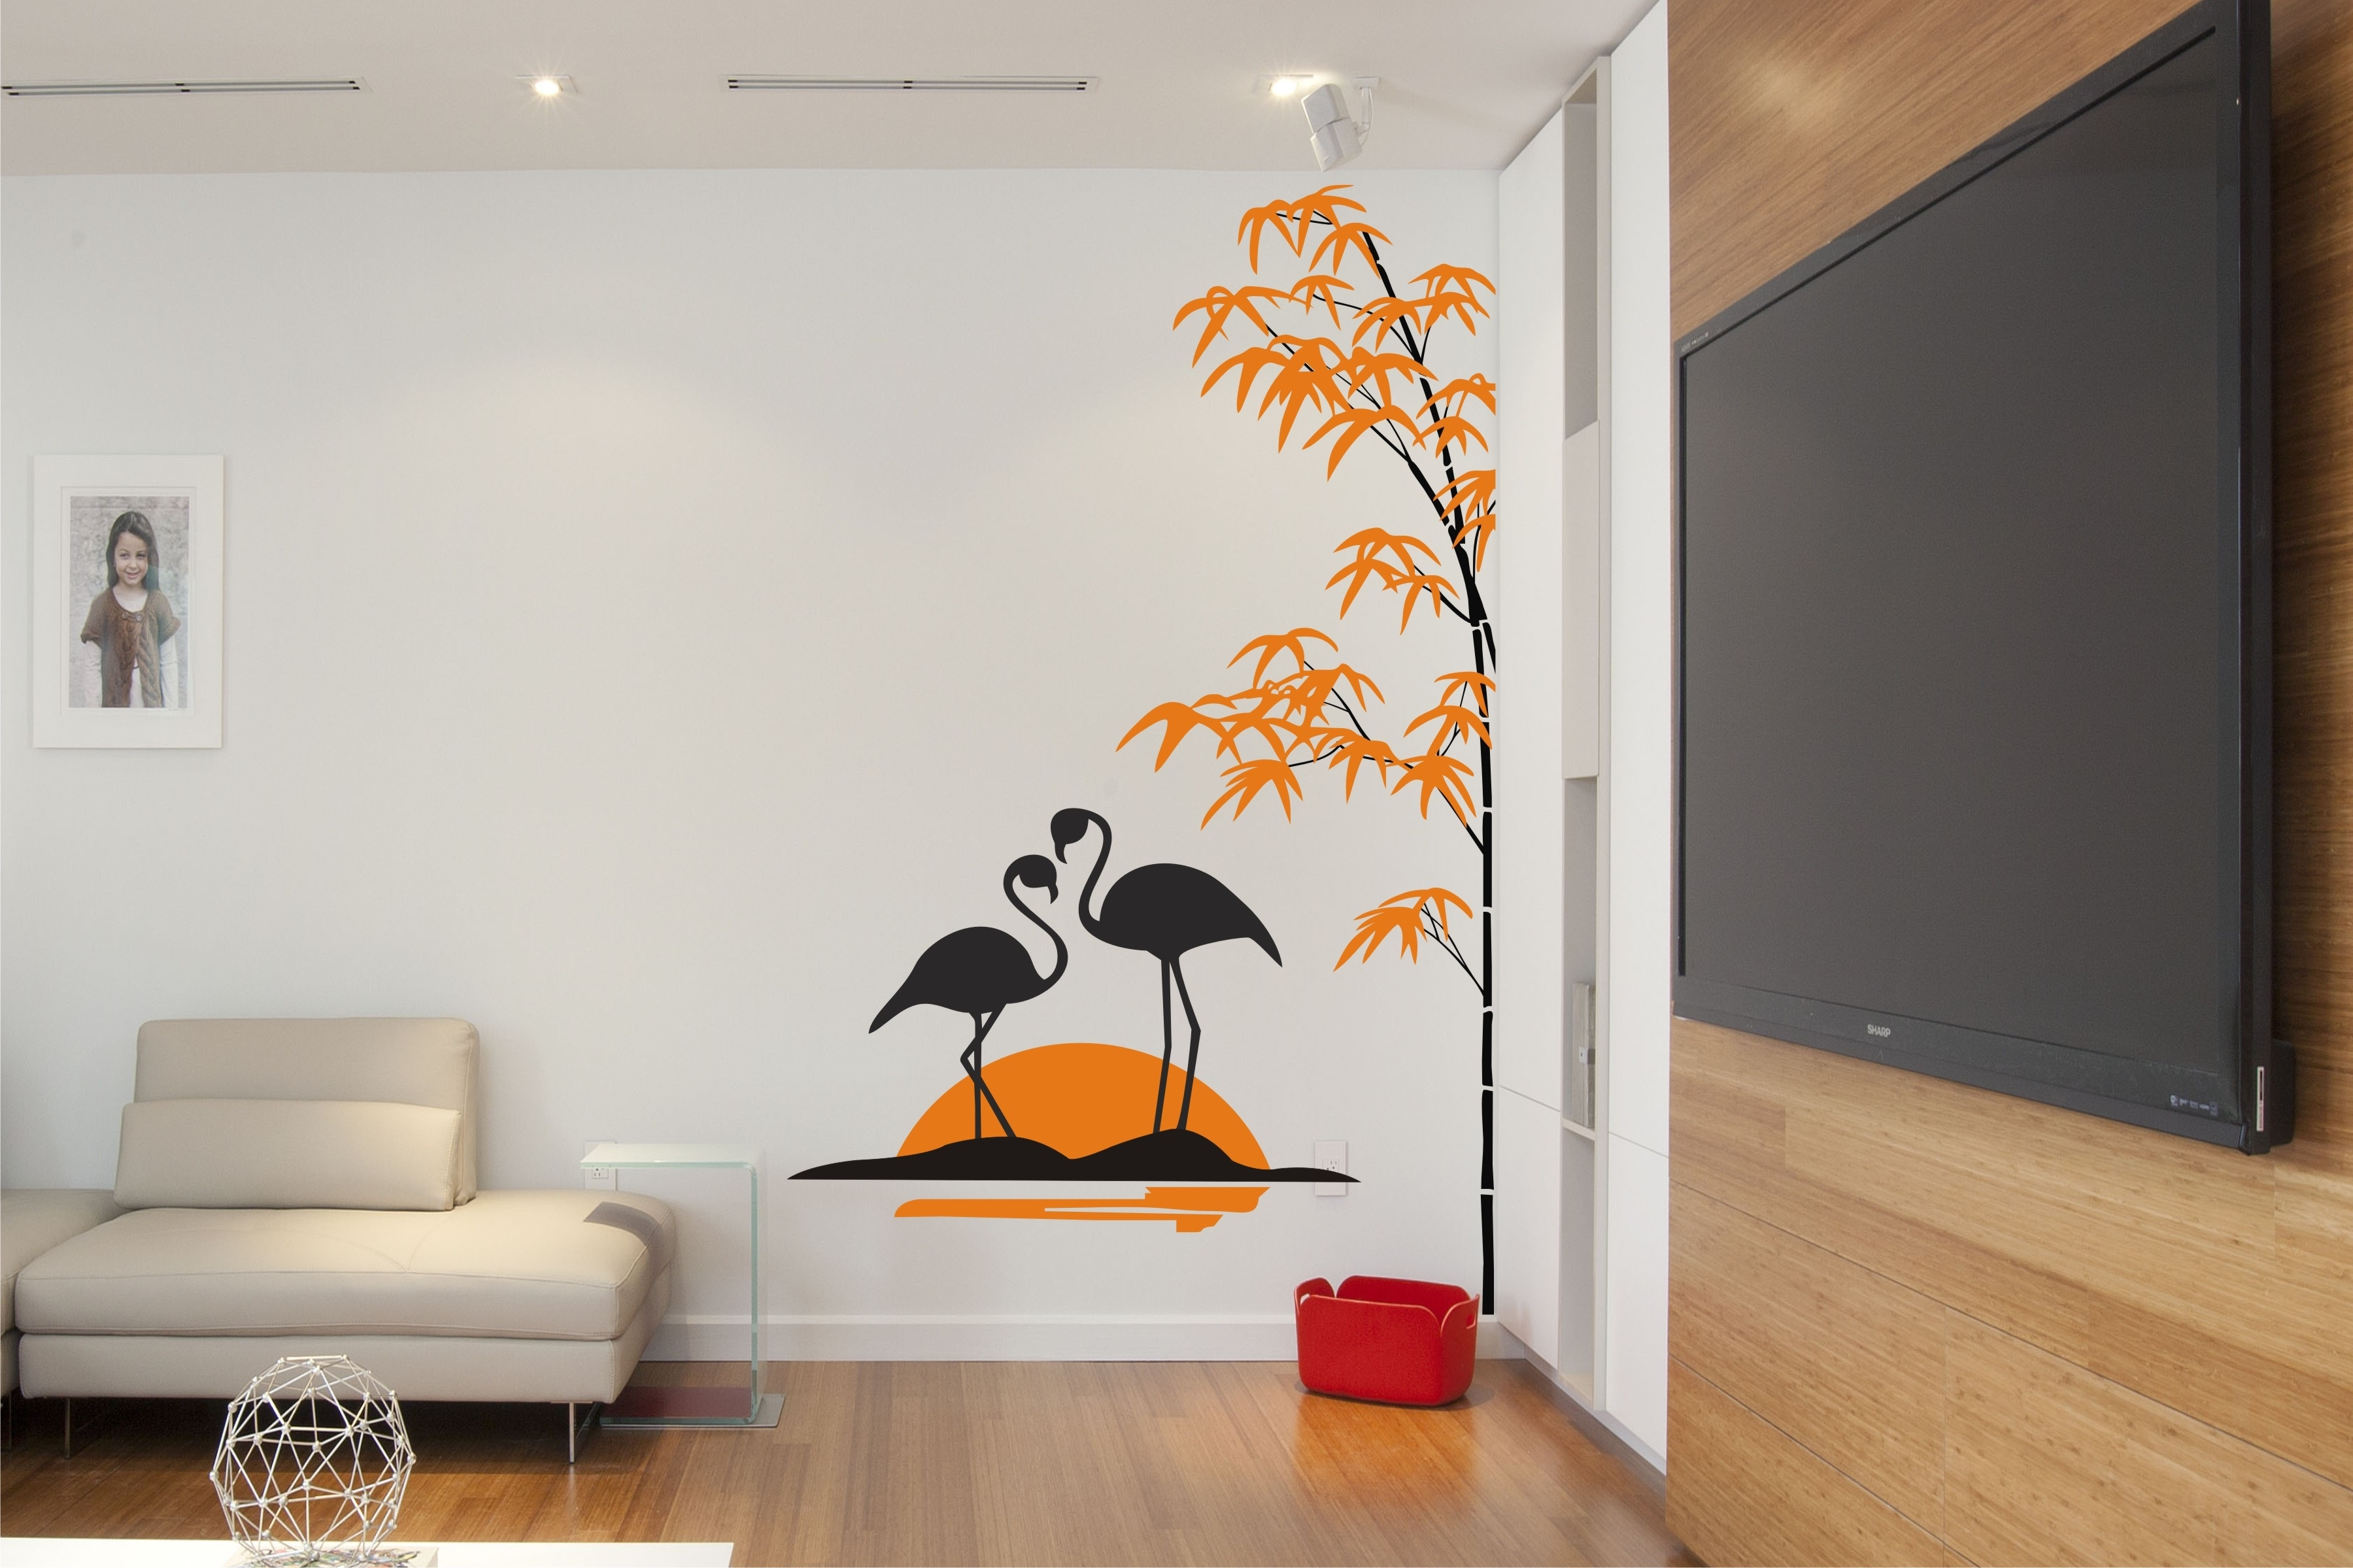 Swan With Bamboo Tree | Buy Customized Gift Solution At Artzolo With Regard To Bamboo Wall Art (View 9 of 20)